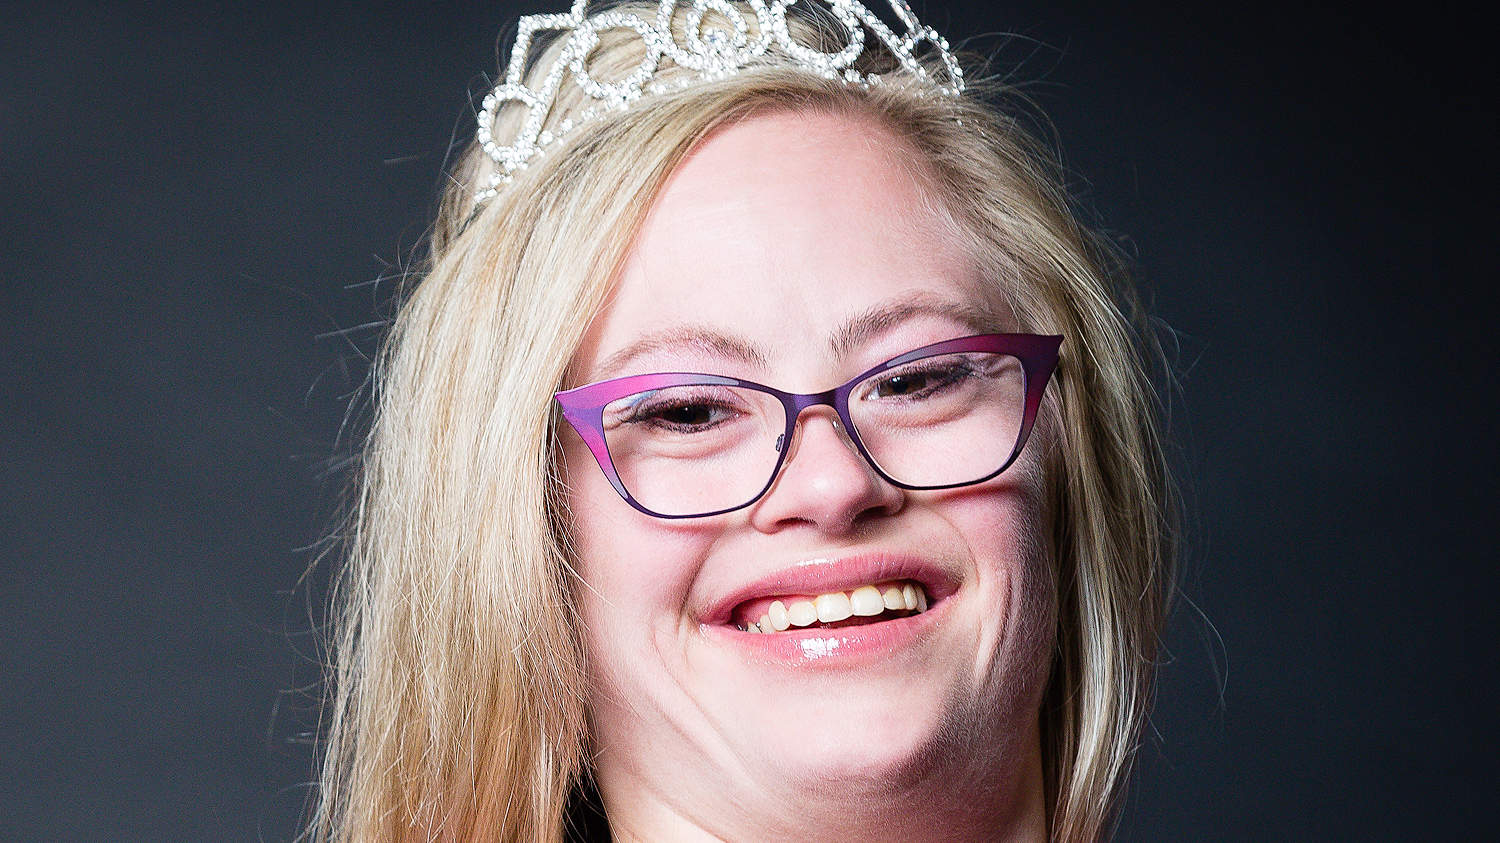 First Woman with Down Syndrome to Compete in Miss Minnesota USA: 'I'm Going to Blaze the Trail!'